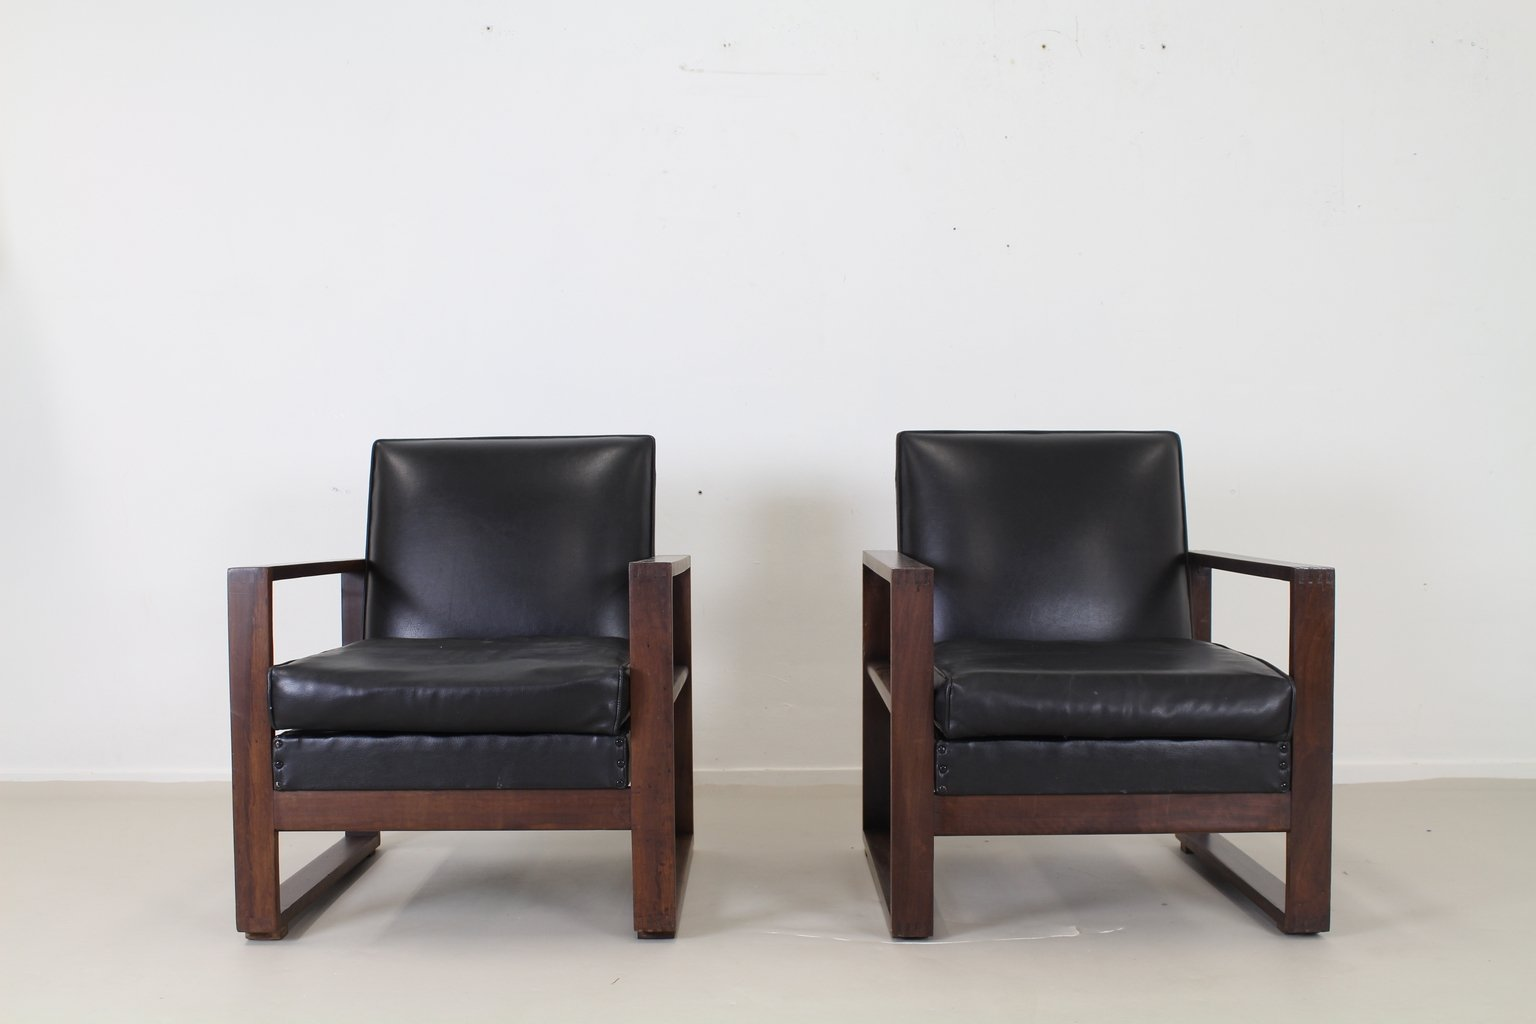 Vintage South African Lounge Chairs, 1965, Set of 2 for sale at Pamono